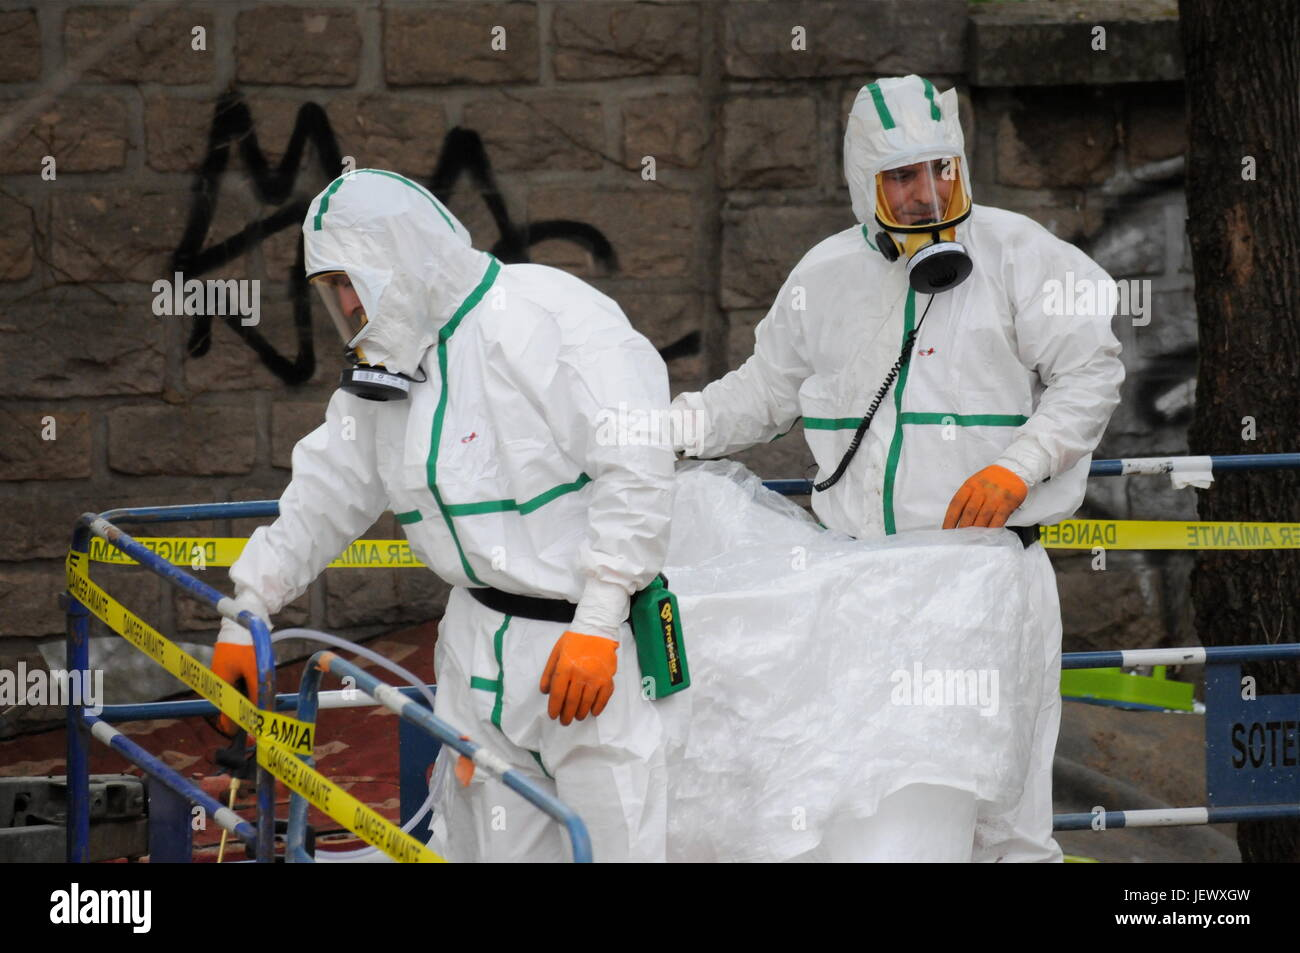 Decontamination specialists remove asbestos in a refugees camp, Lyon - Stock Image